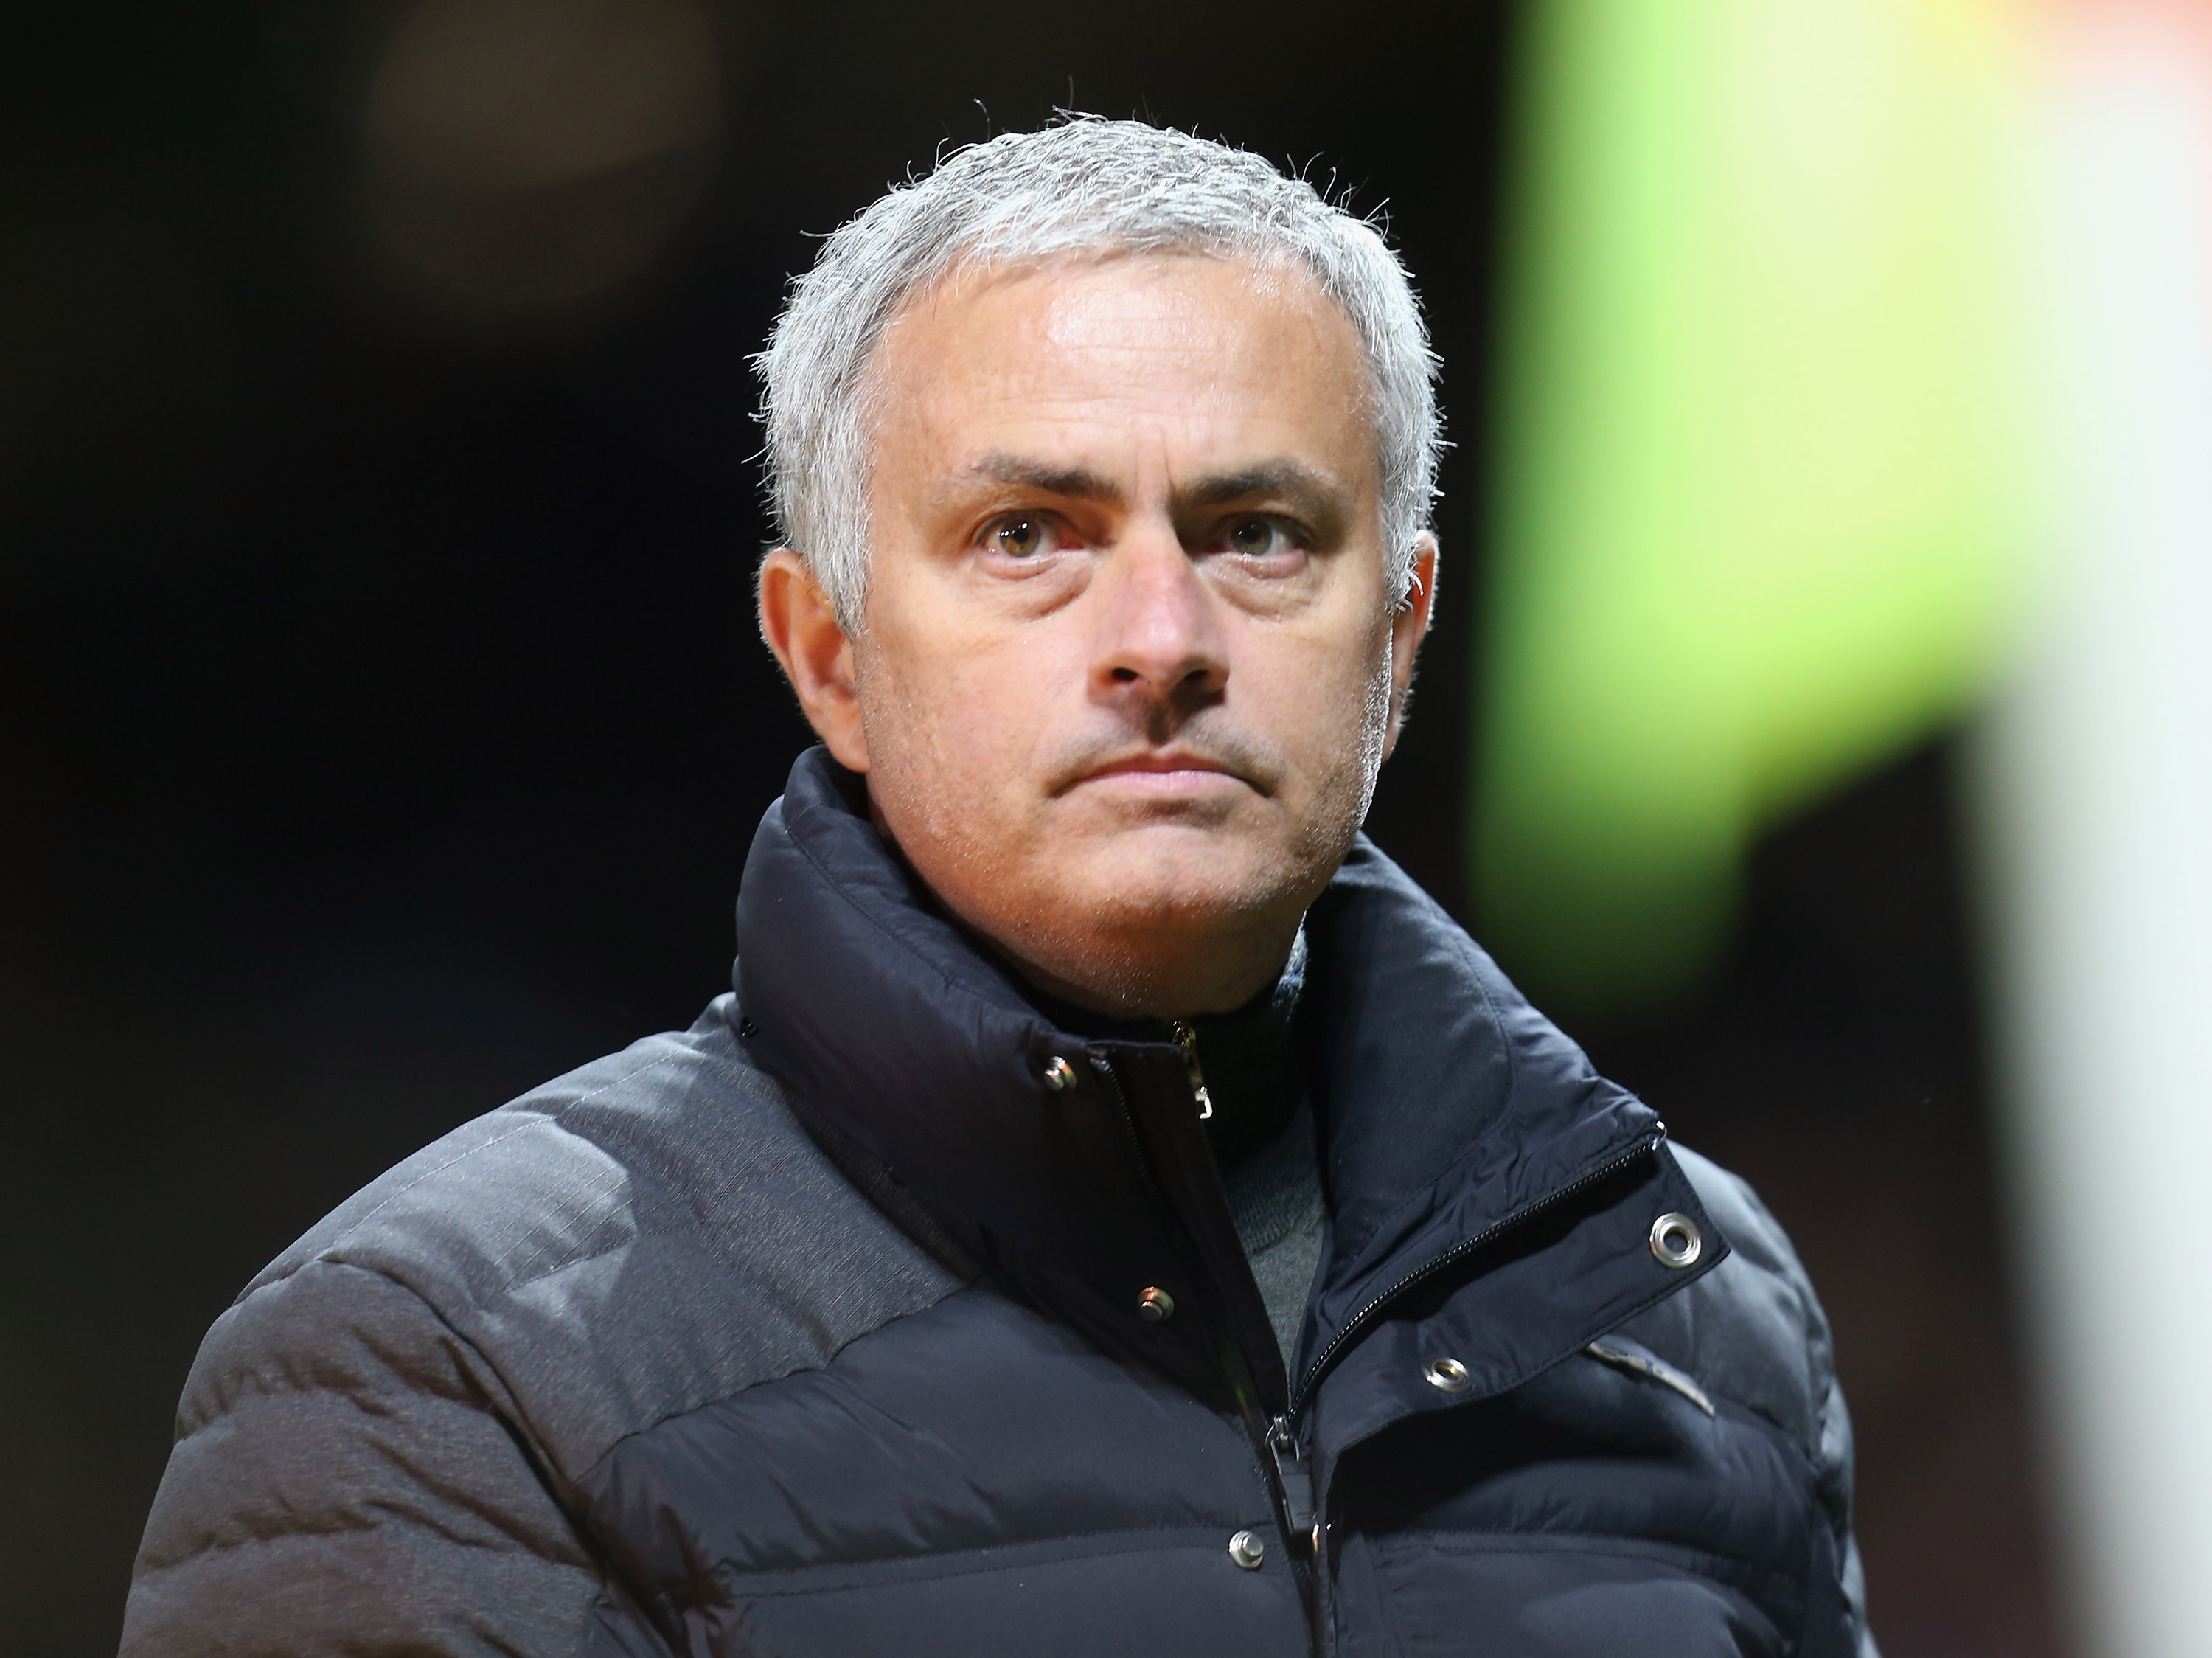 Chelsea owner Roman Abramovich and I were never friends, says Manchester United boss Jose Mourinho